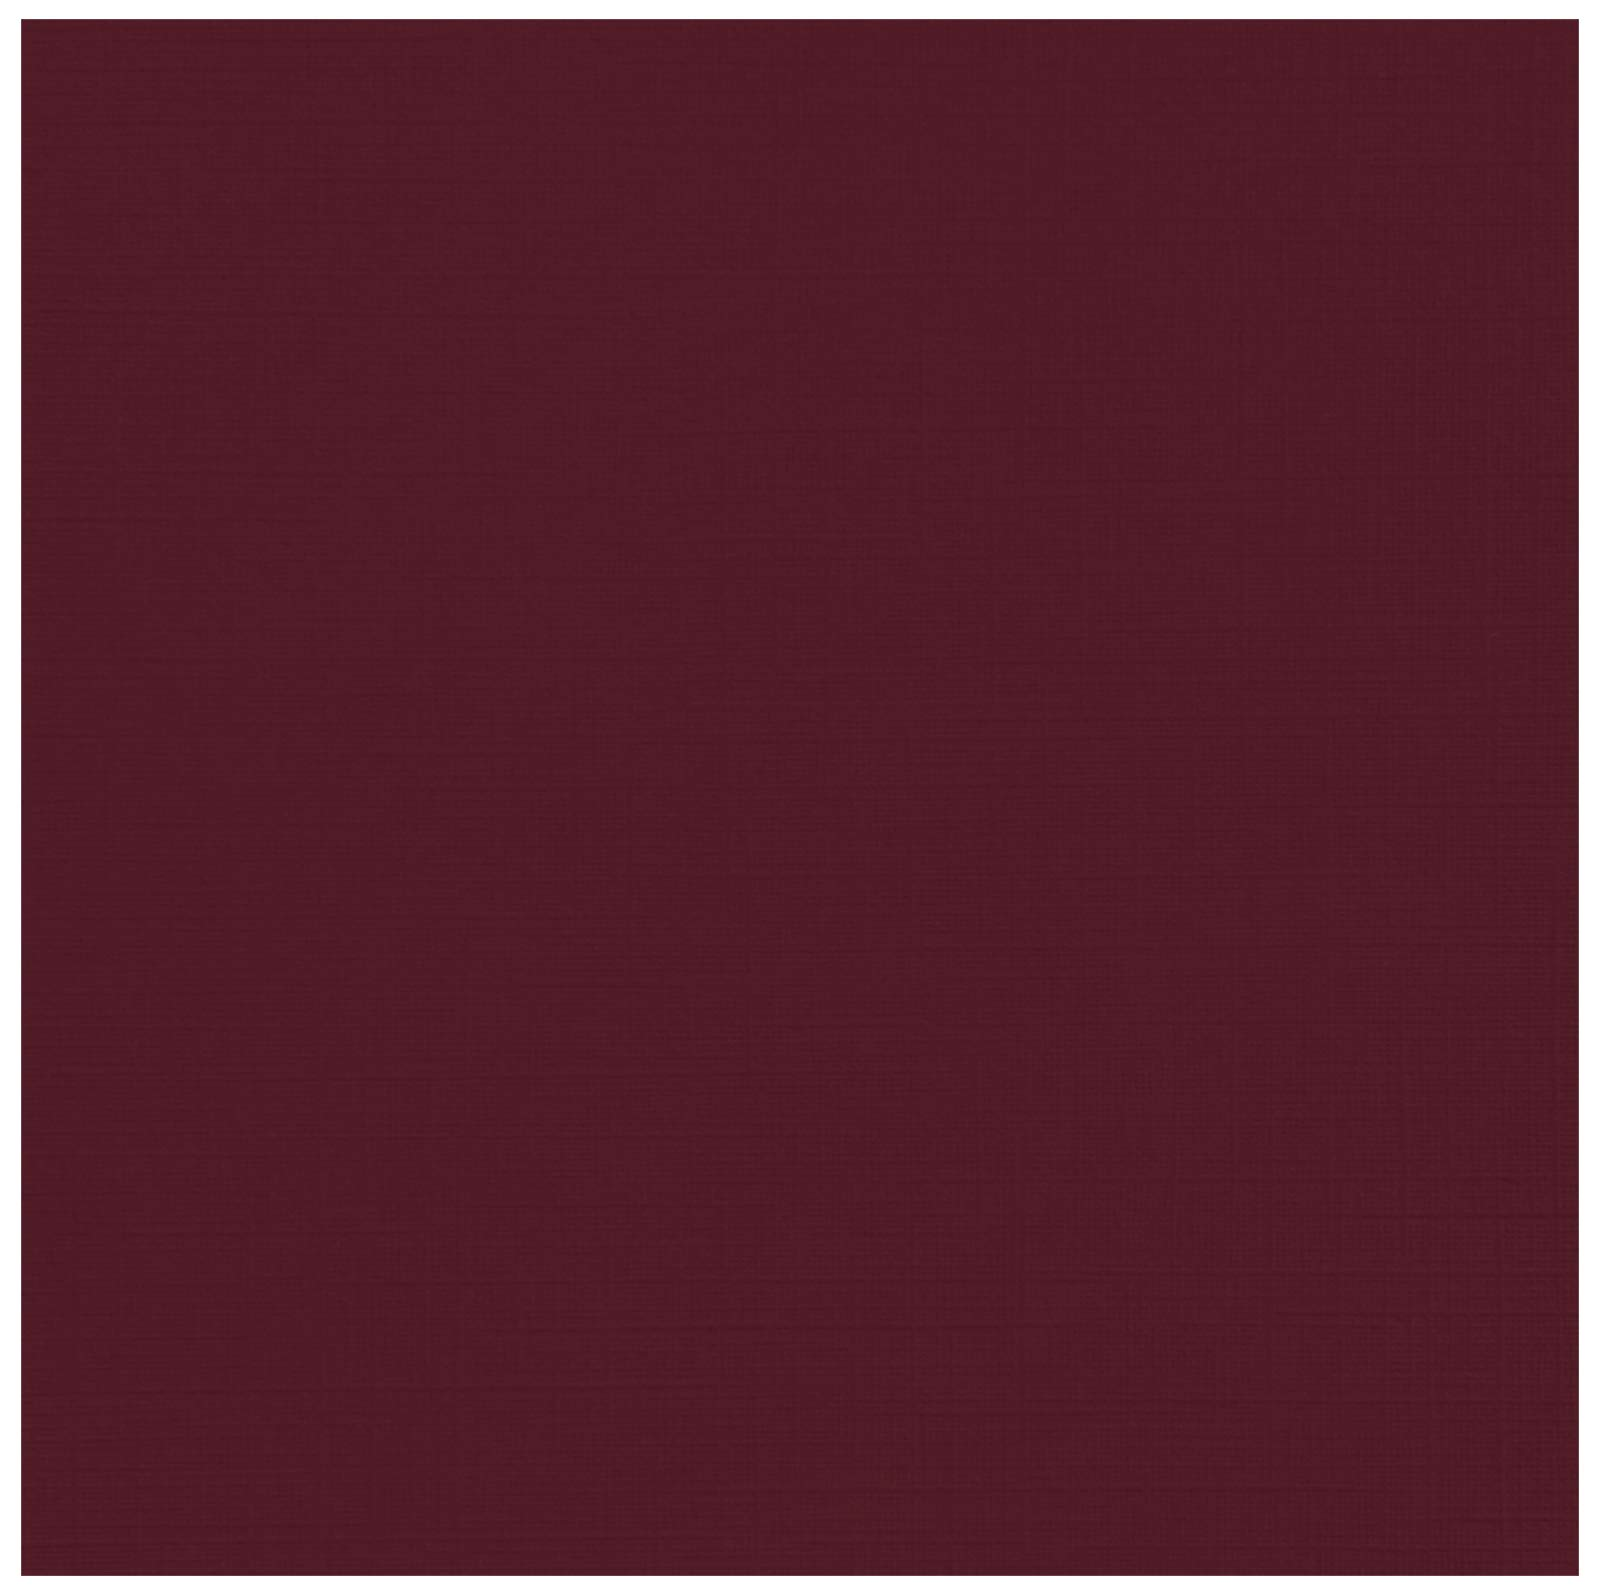 12 x 12 Cardstock - Burgundy Linen (250 Qty.) | Perfect for Crafting, Invitations, Scrapbooking, Art Projects, Menus, Brochures | Printable | 100lb. Cover Weight | 1212-C-BGLI-250